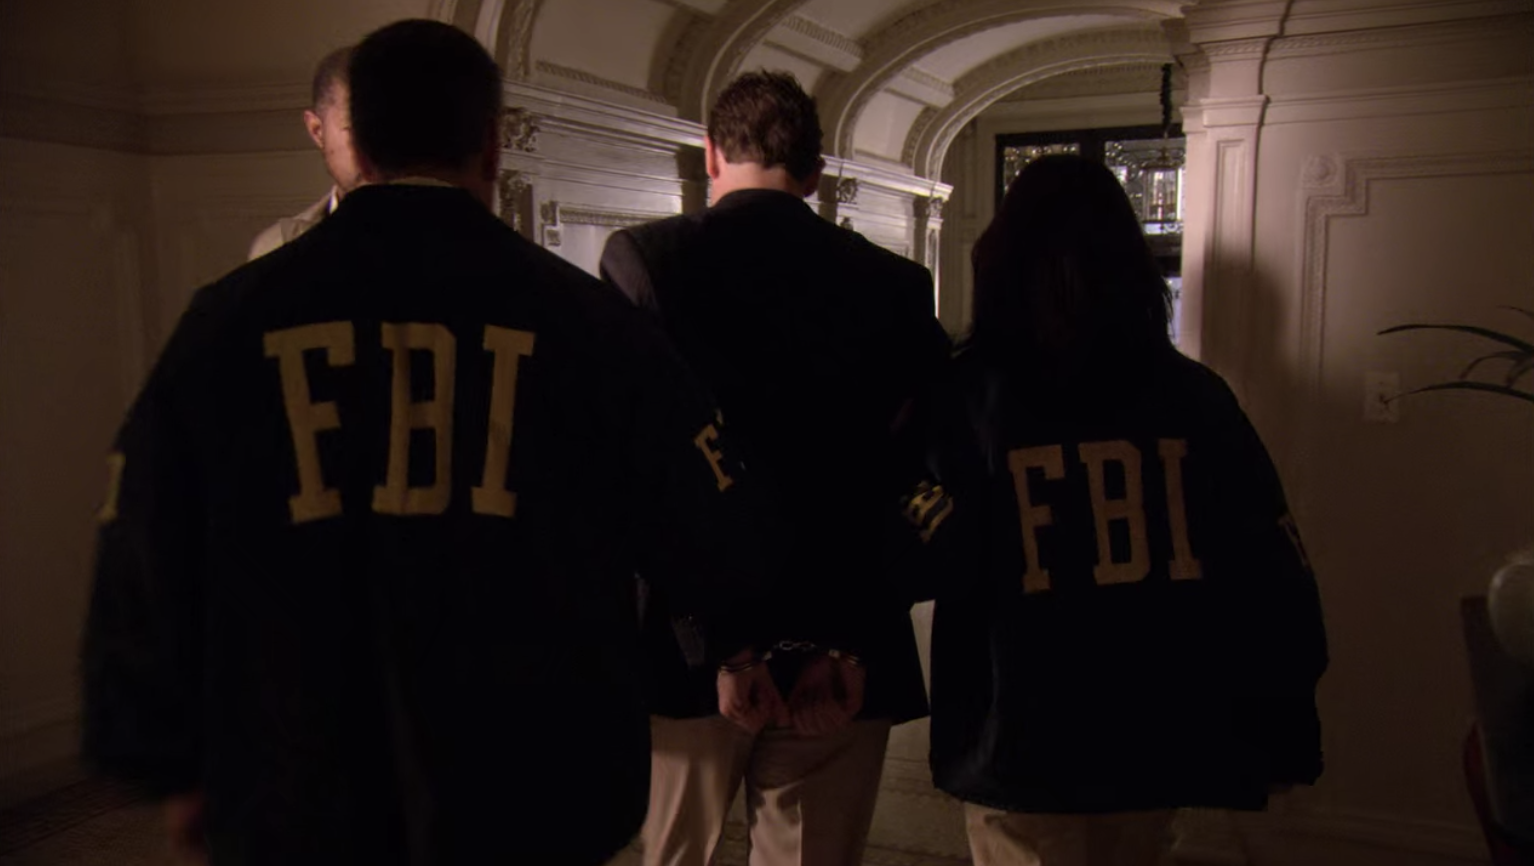 The Captain being escorted out by the FBI